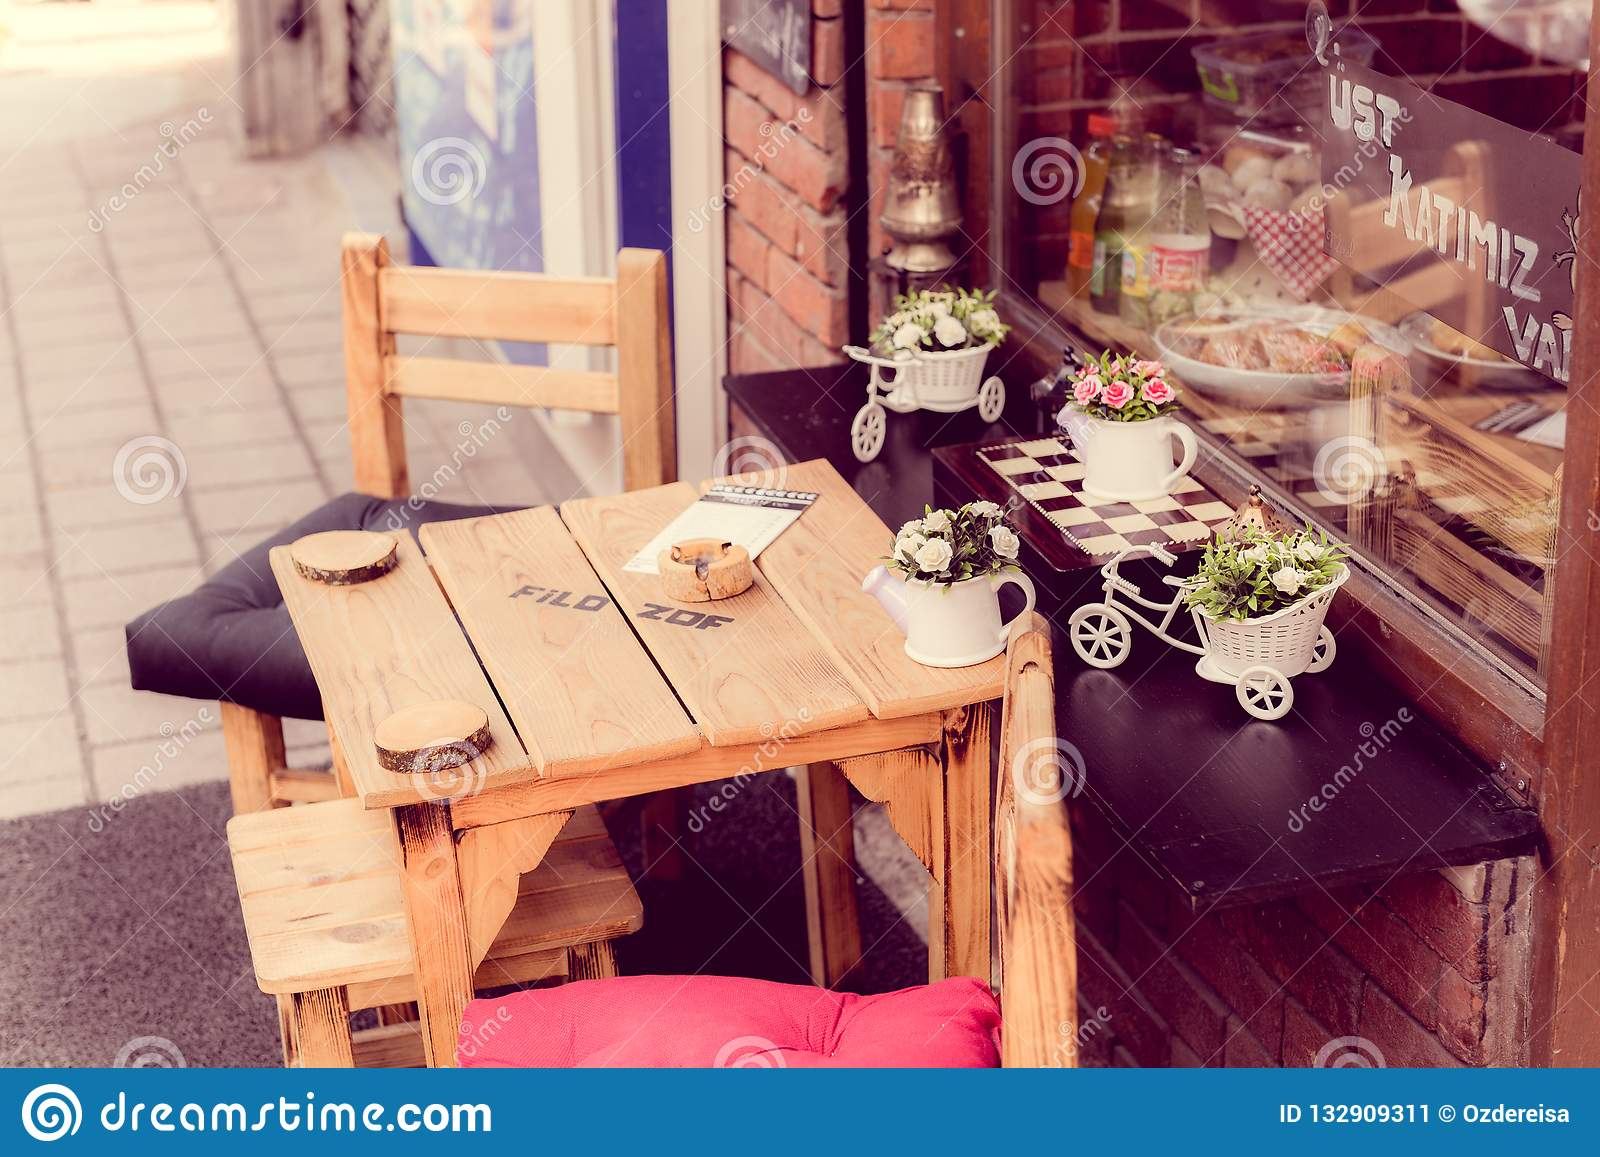 Retro Vintage View Of Pastel Coffee Shop Stock Image Image Of Design Cafe 132909311